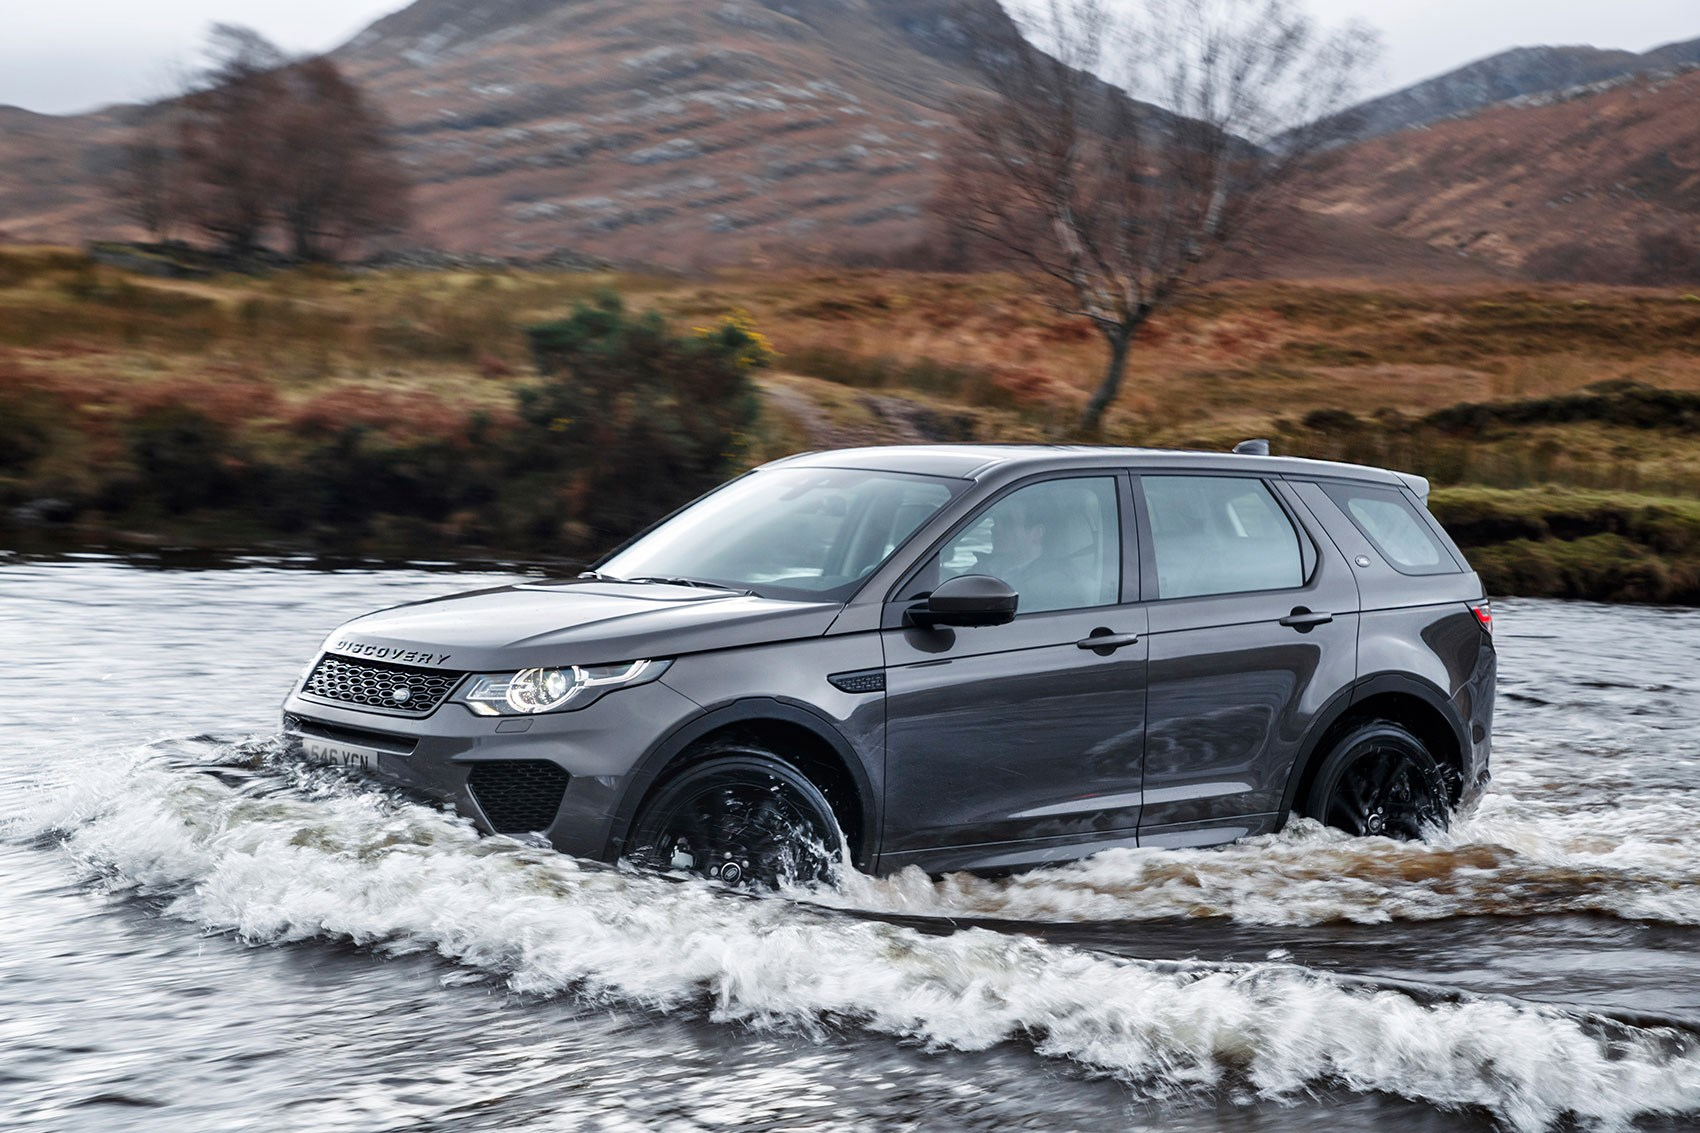 Land Rover Discovery Sport Range Rover Evoque 2018 model year